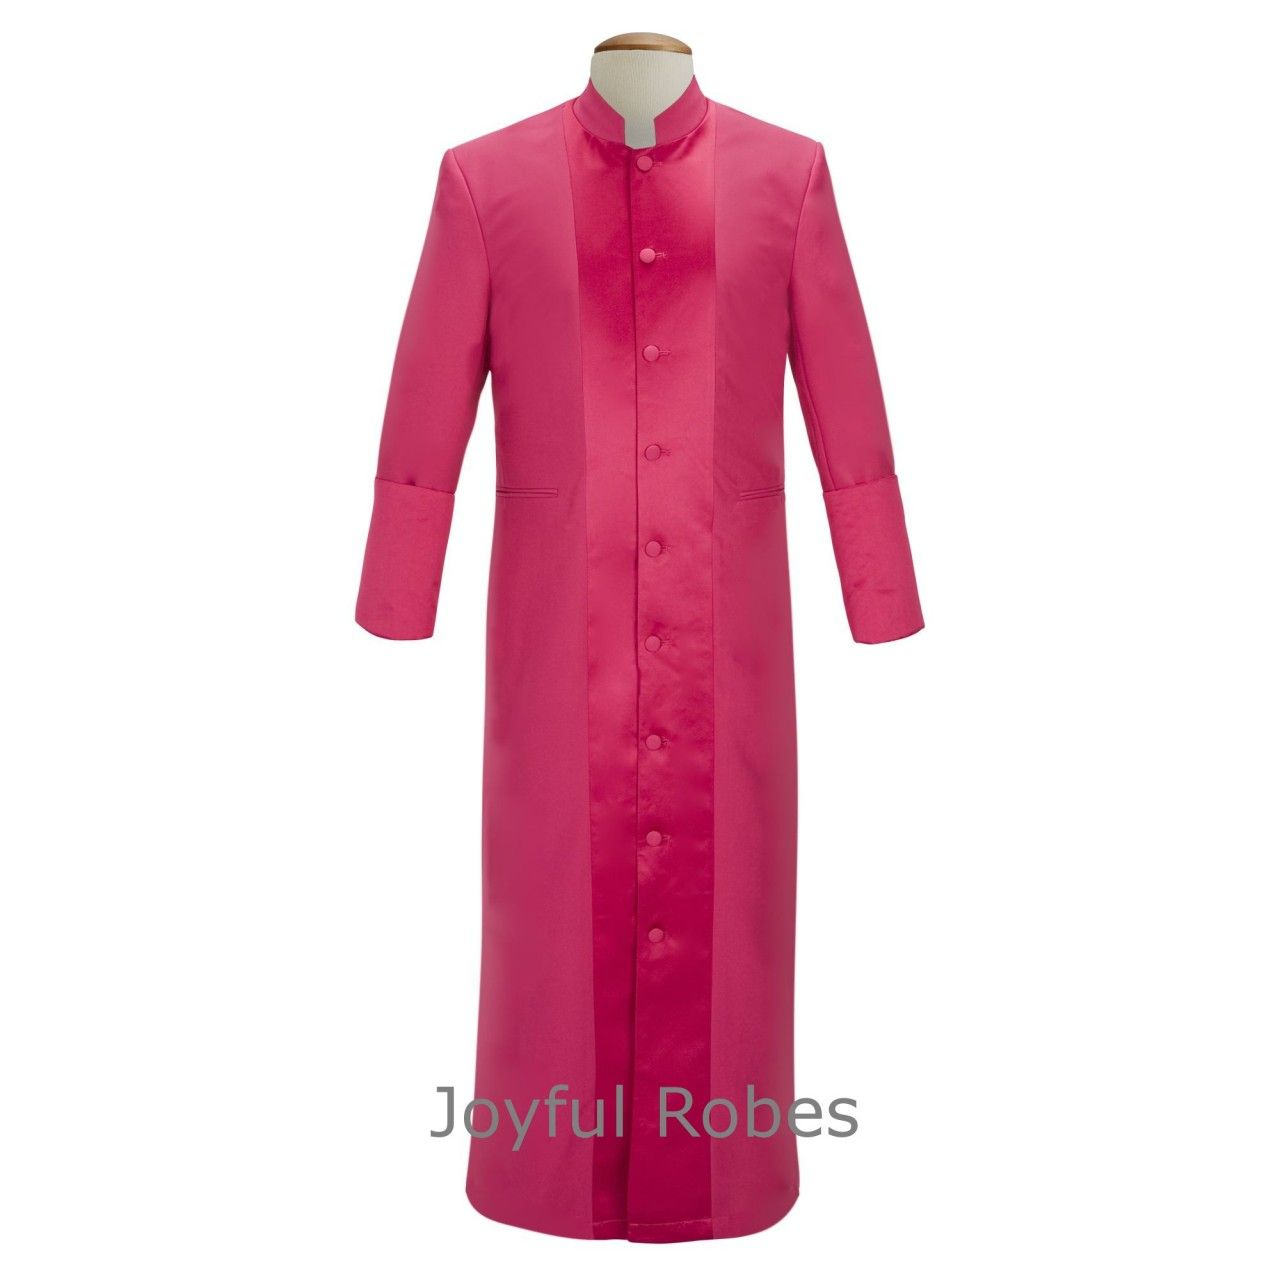 133 M. Men's Pastor/Clergy Robe Fuchsia With Majestic Satin